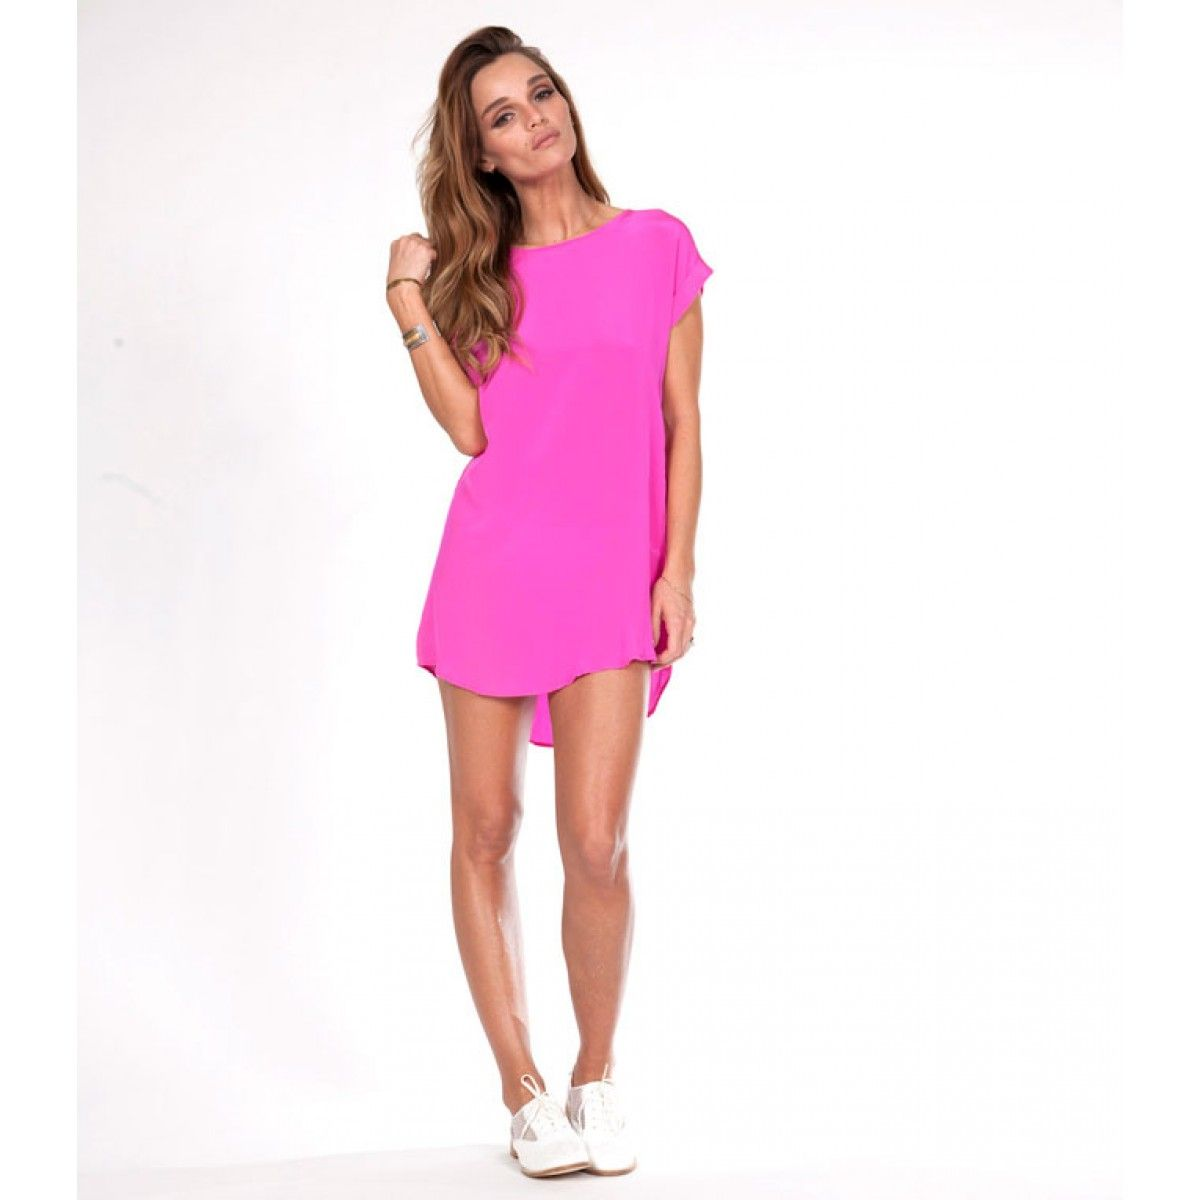 rieley-dallas-tunic-pink-summer-dress-silk | Summer Dresses ...